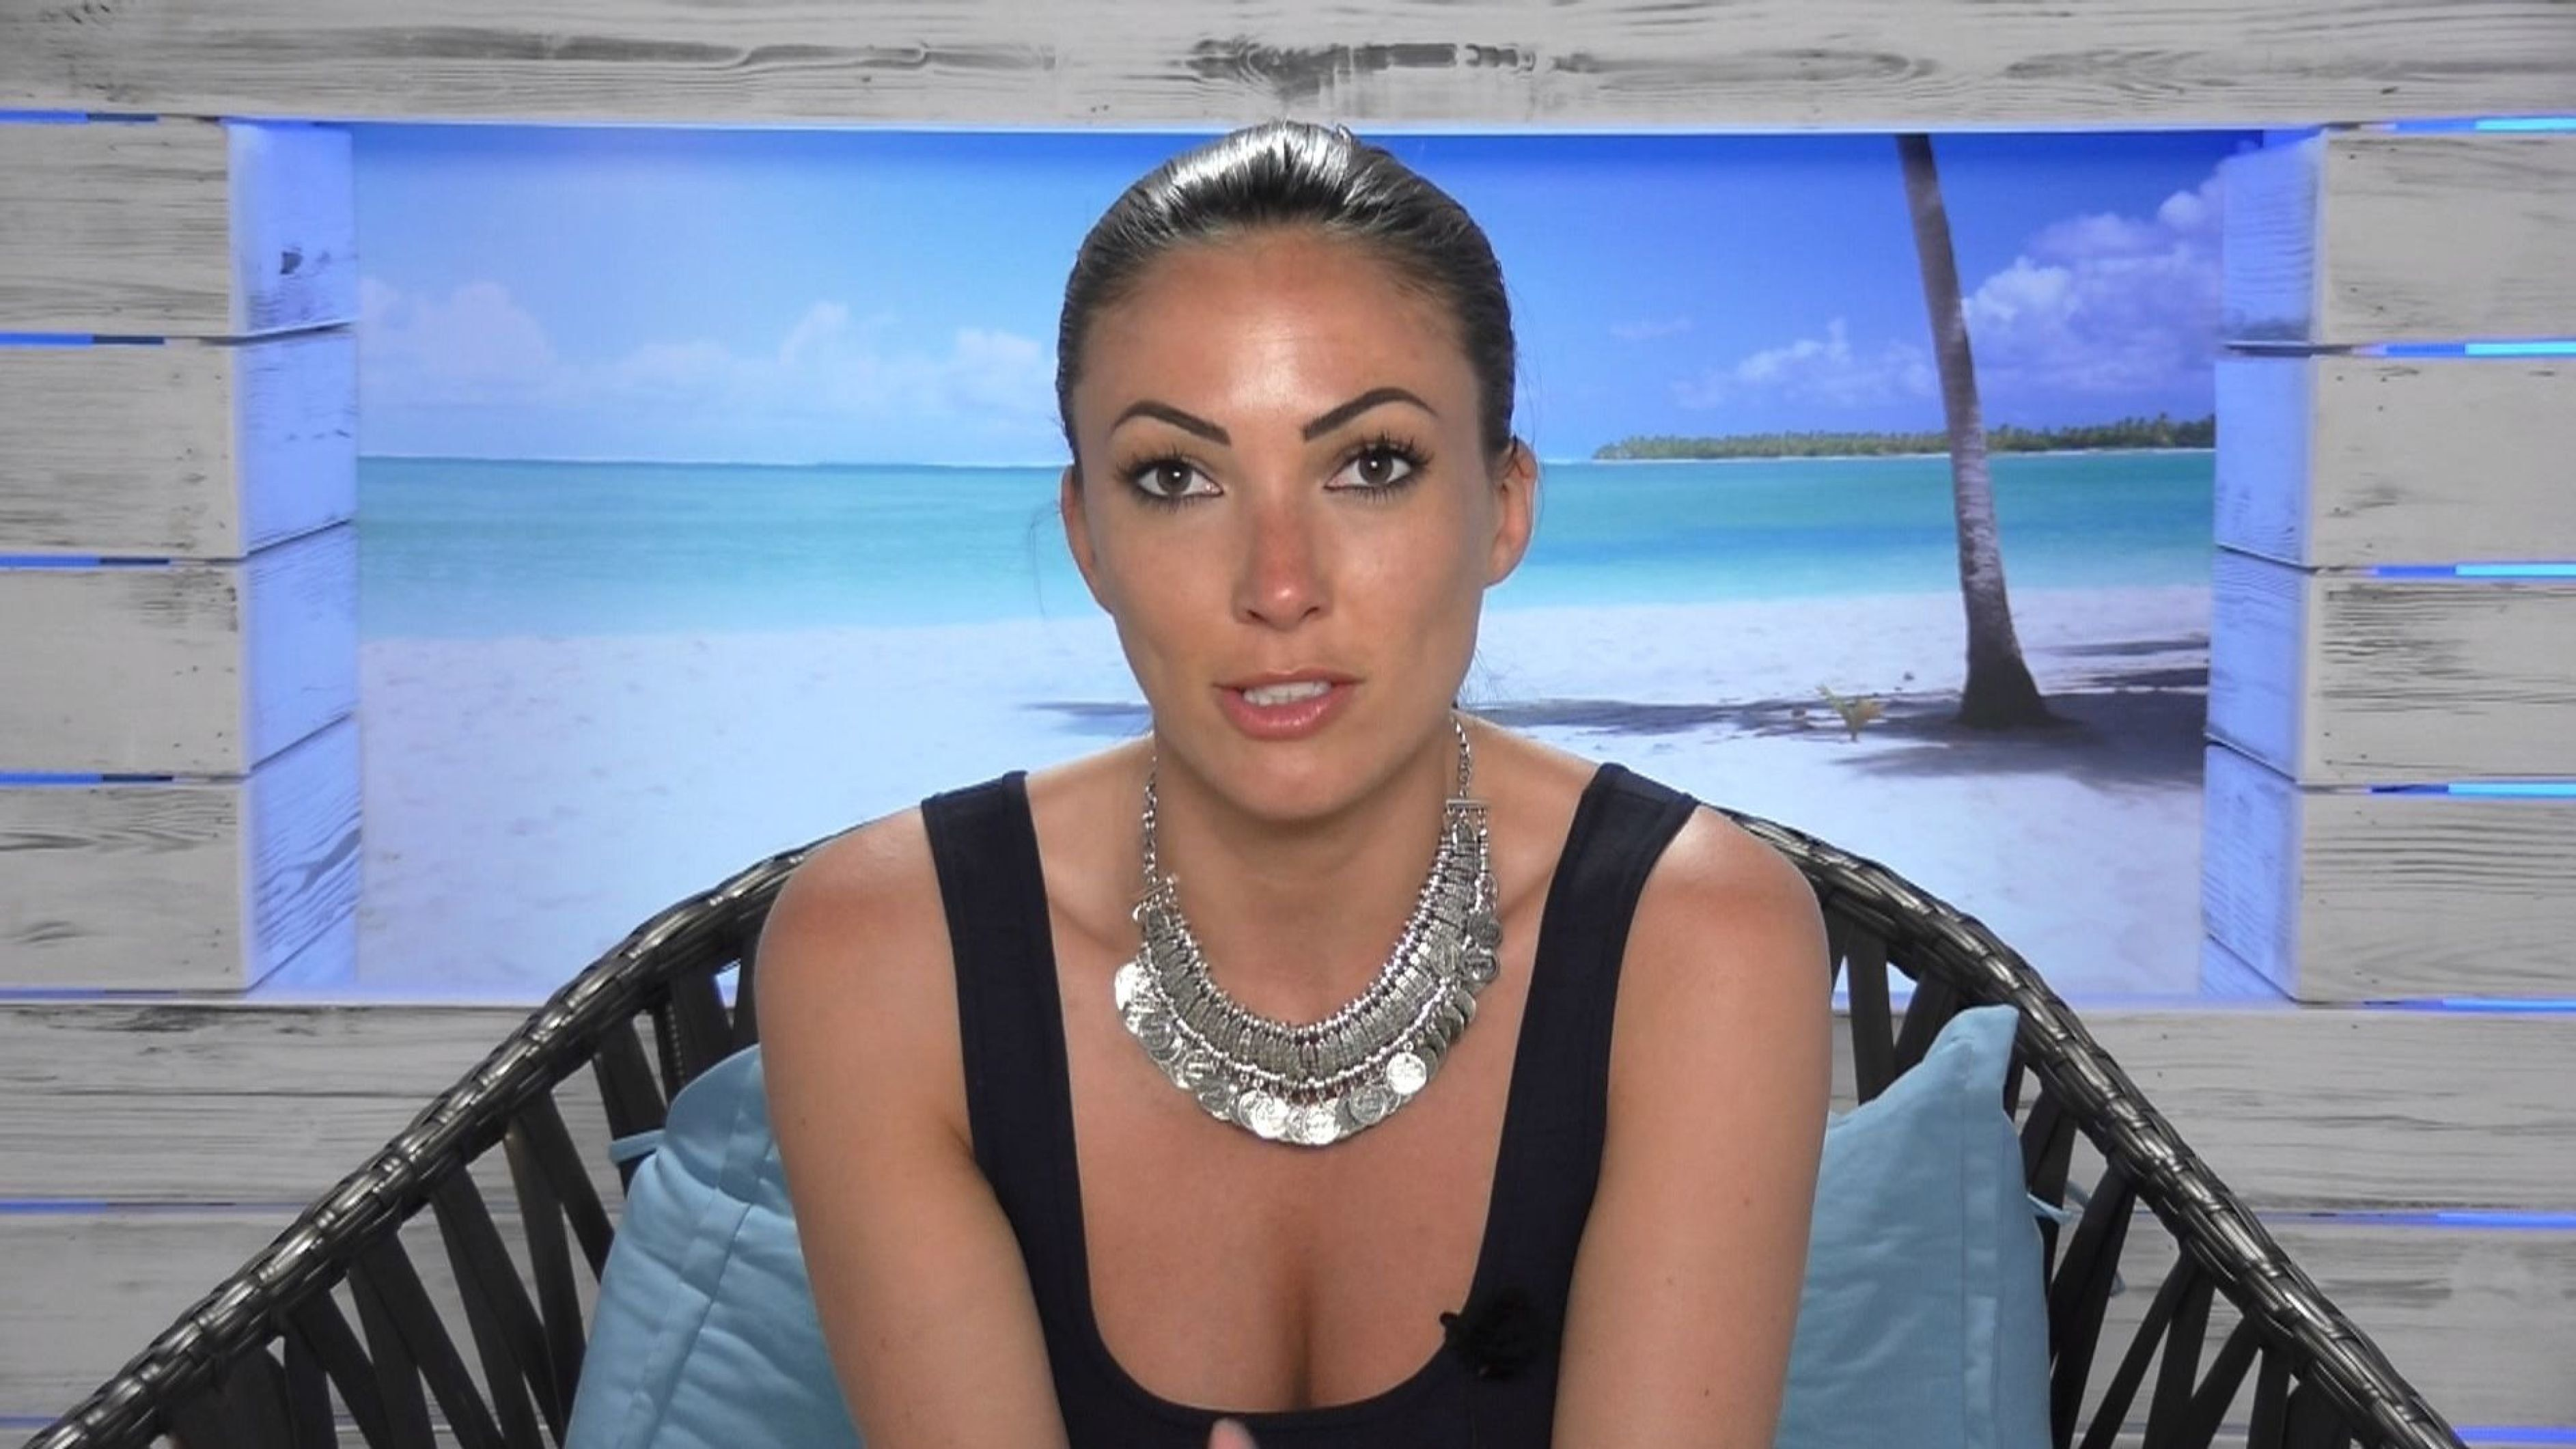 Sophie Gradon's Parents Share Heartbreak At 'Love Island' Star's Death